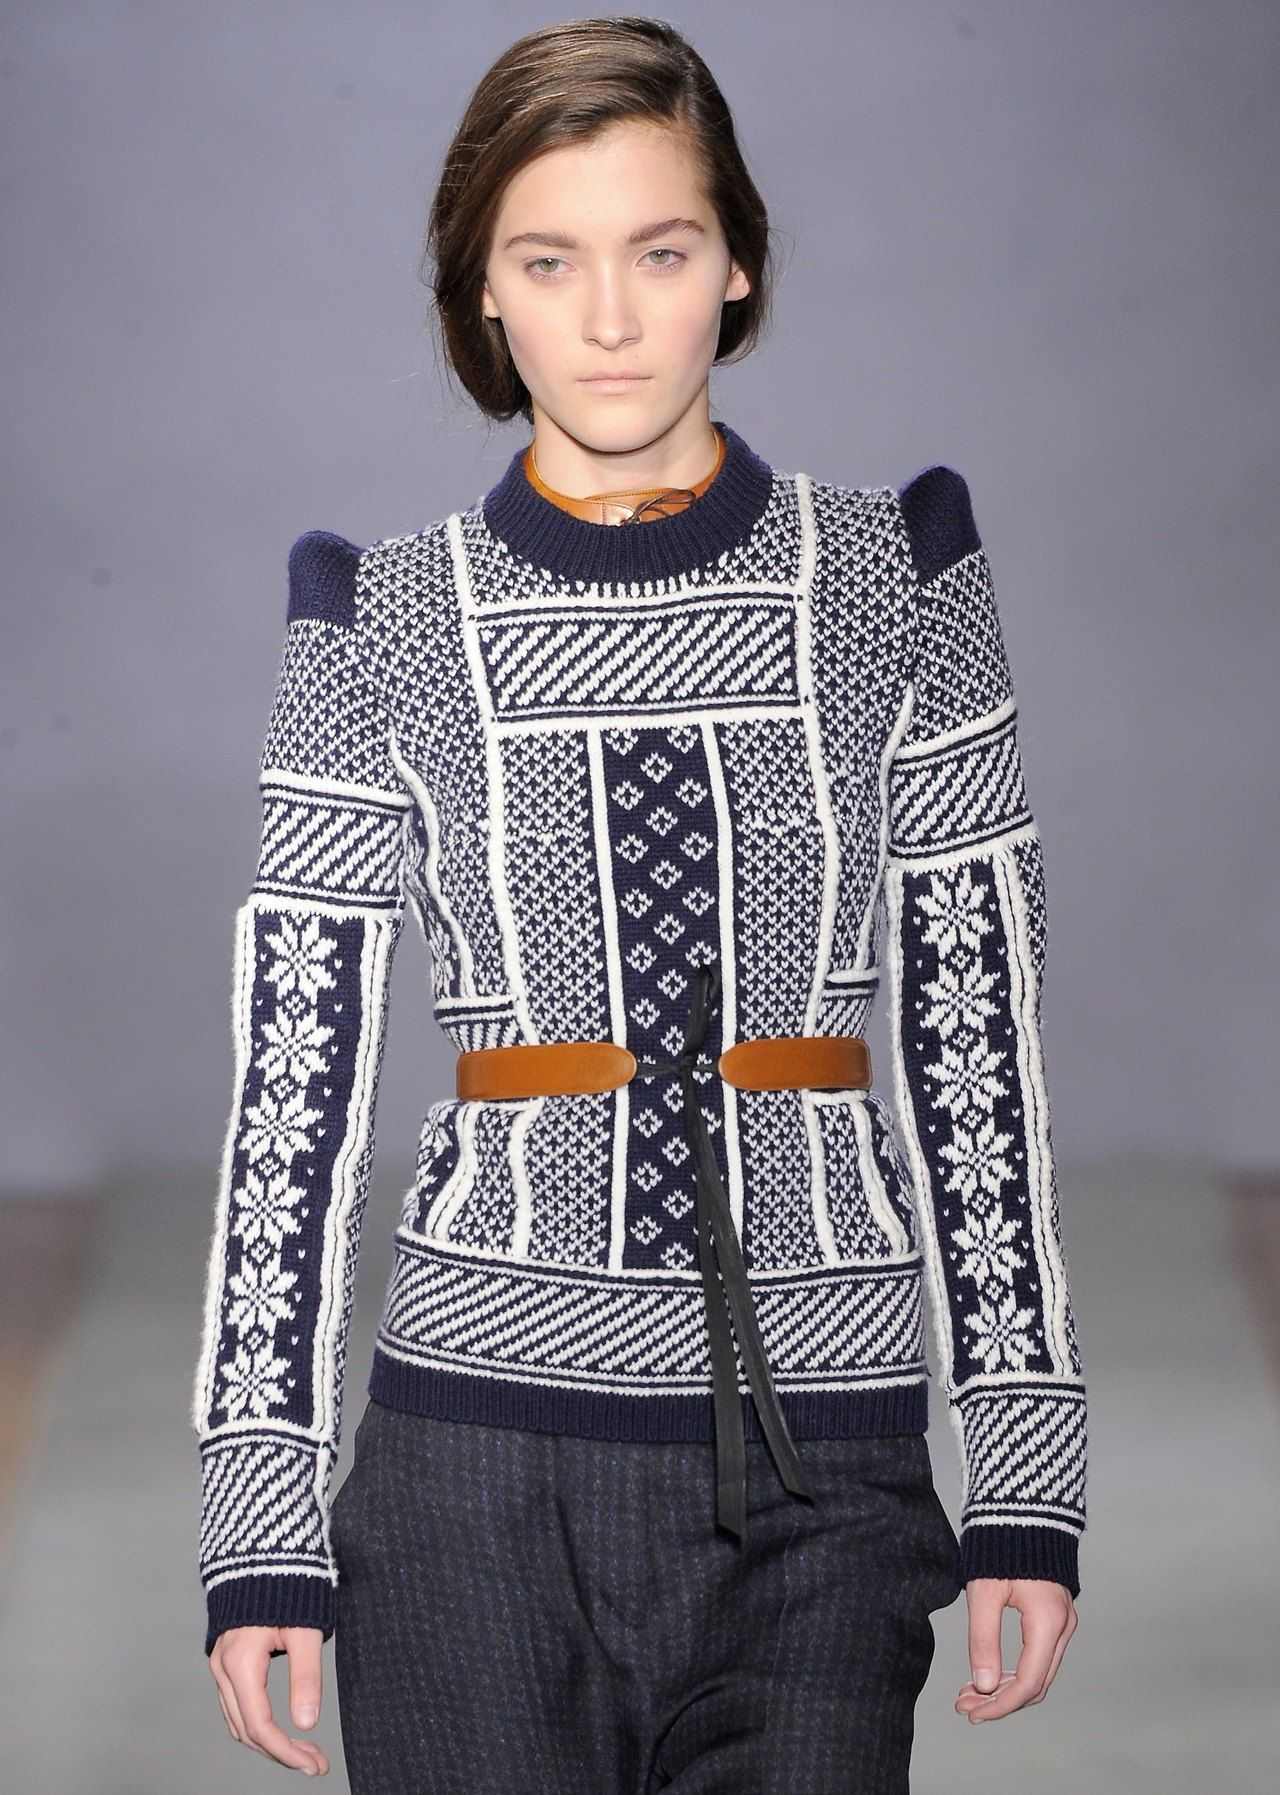 wgsn: The hint of an alpine theme in this knit from @Maison ecologique ecologique Martin Margiela #pfw